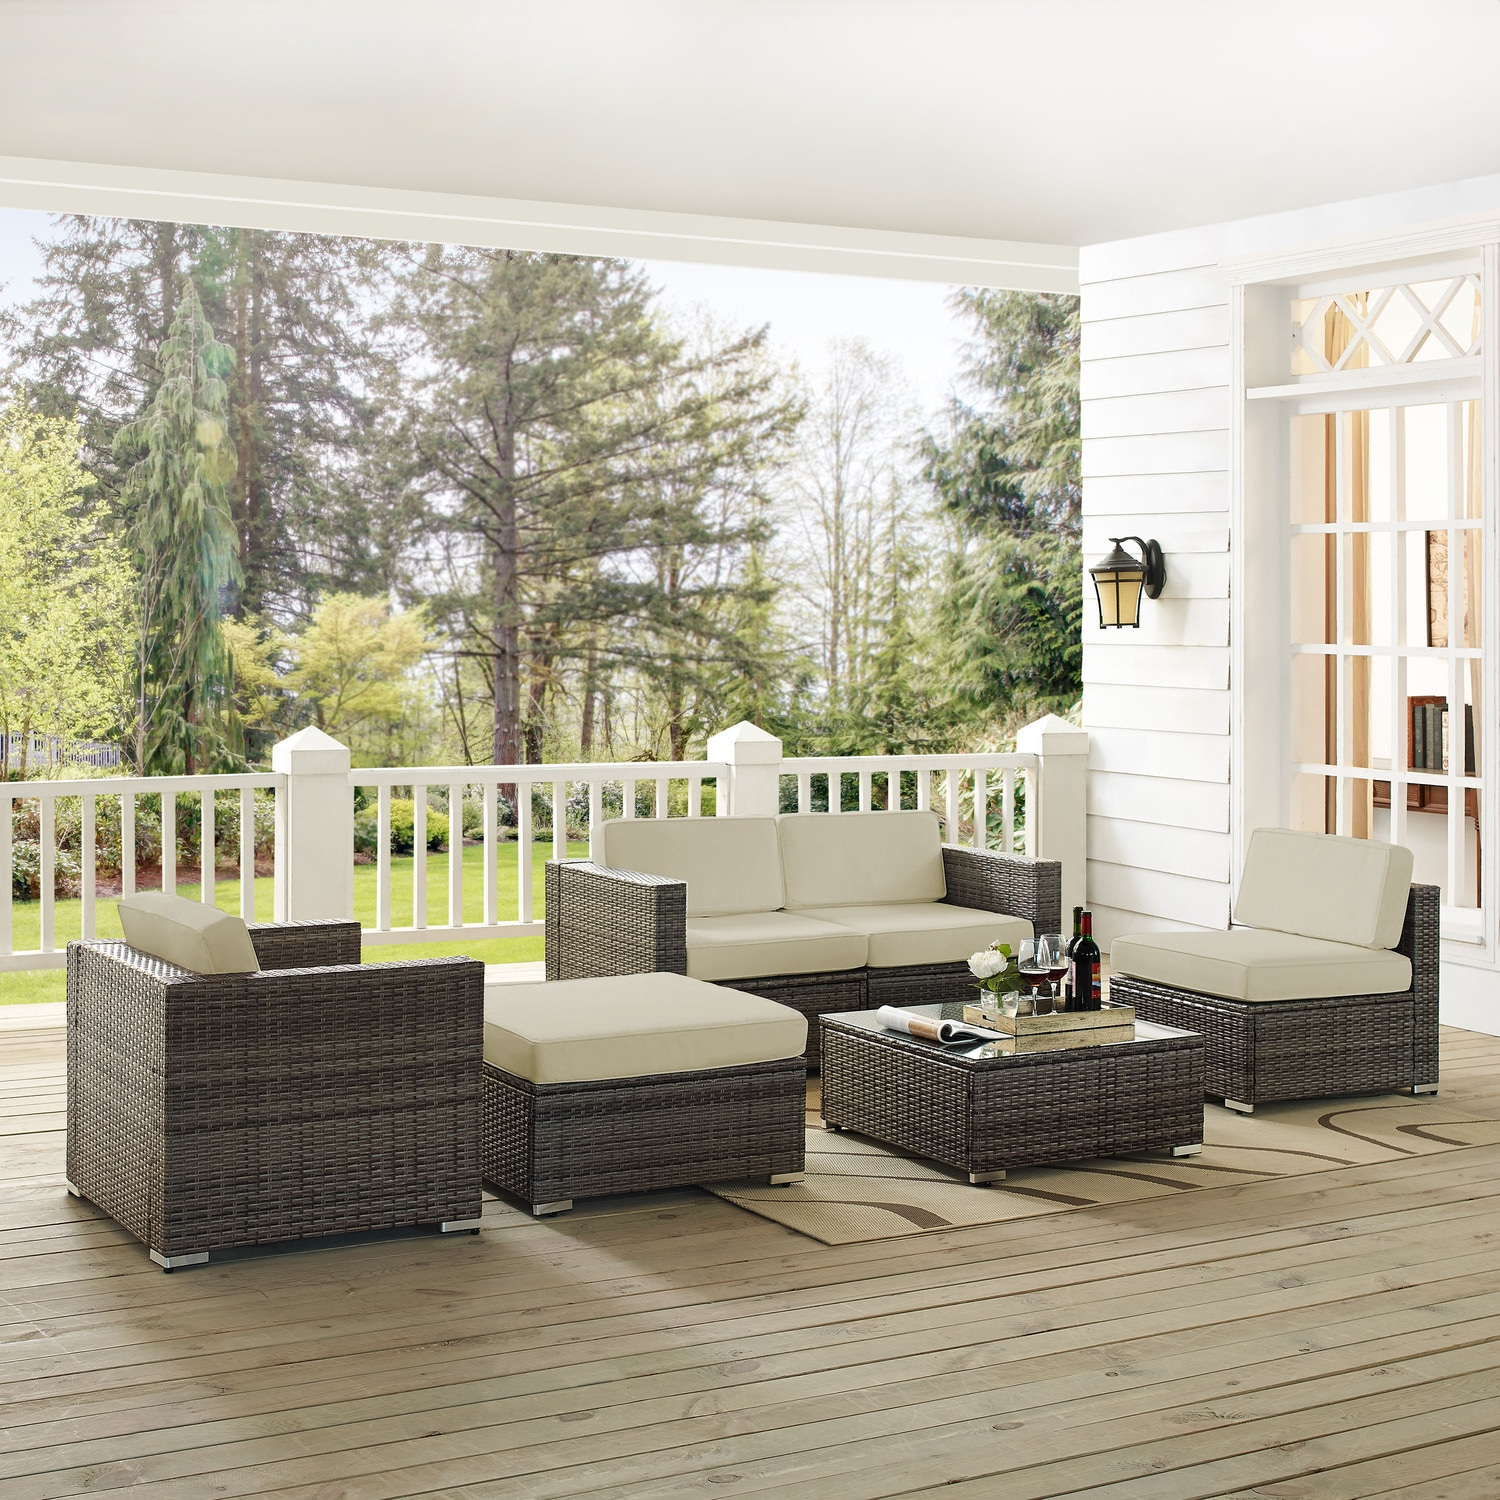 Outdoor Furniture - Jacques 2-Piece Outdoor Loveseat, Arm Chair, Armless Chair, Ottoman, and Coffee Table Set - Gray